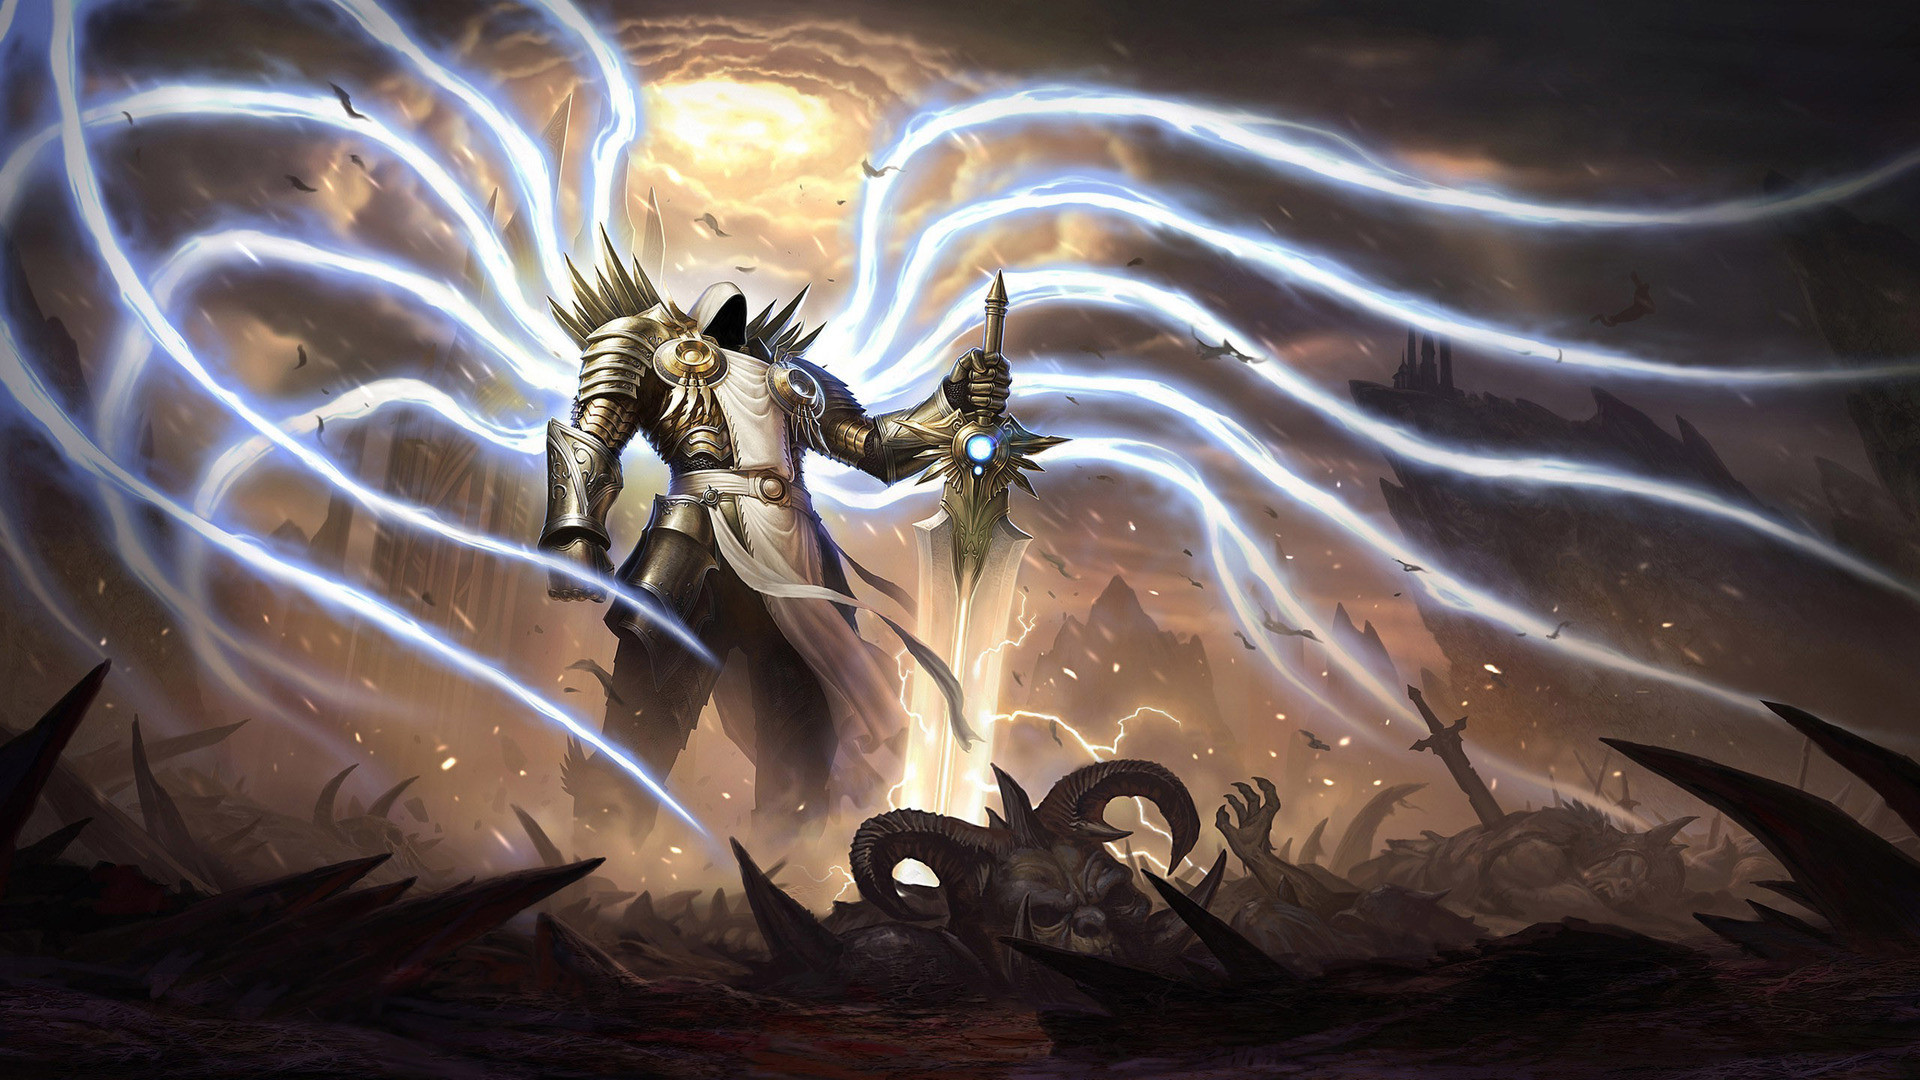 4k Animated Wallpaper Diablo 3 Archangel Tyrael 1920x1080 Wallpaper Teahub Io